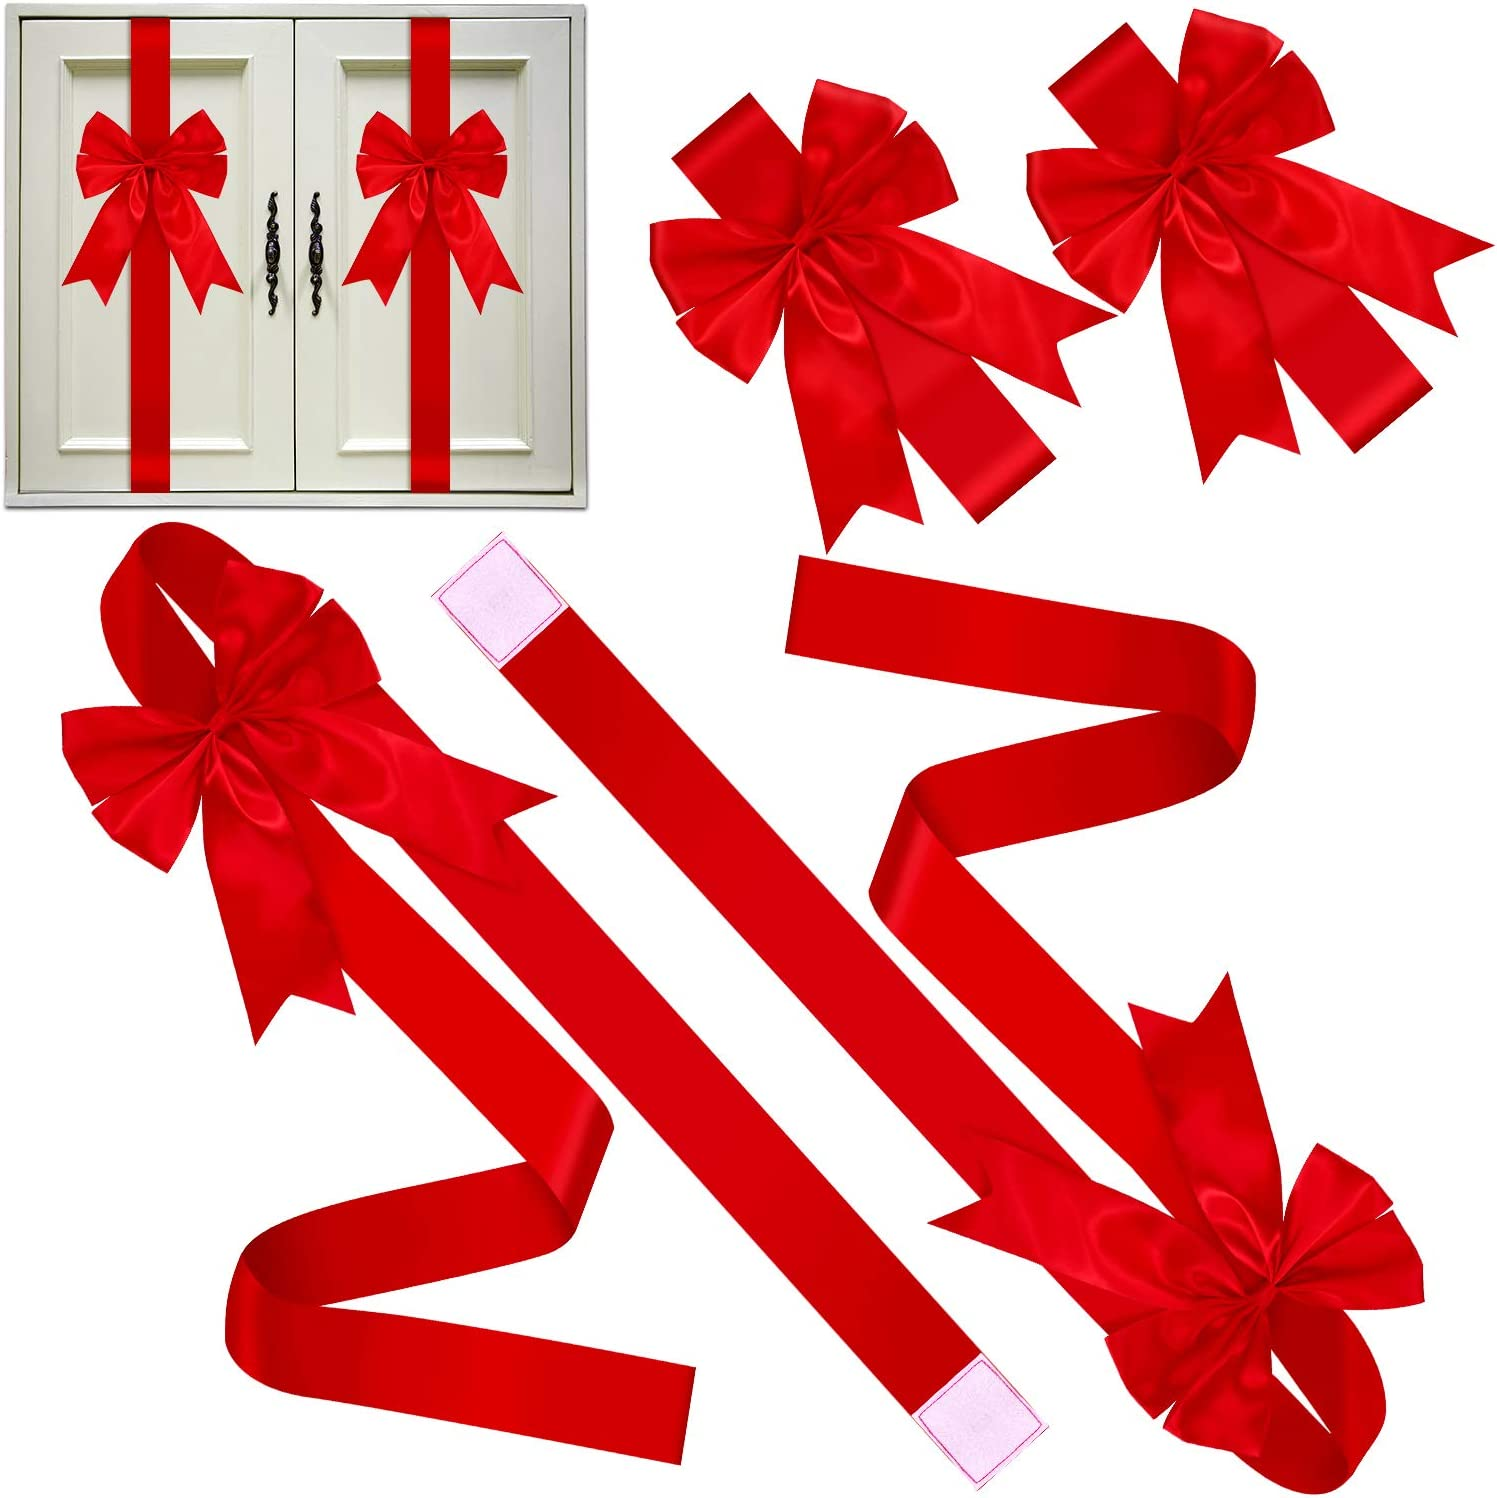 6 Pieces Christmas Cabinet Festive Ribbons Christmas Door Ribbon and Bows for Christmas Party Decorations (Red)